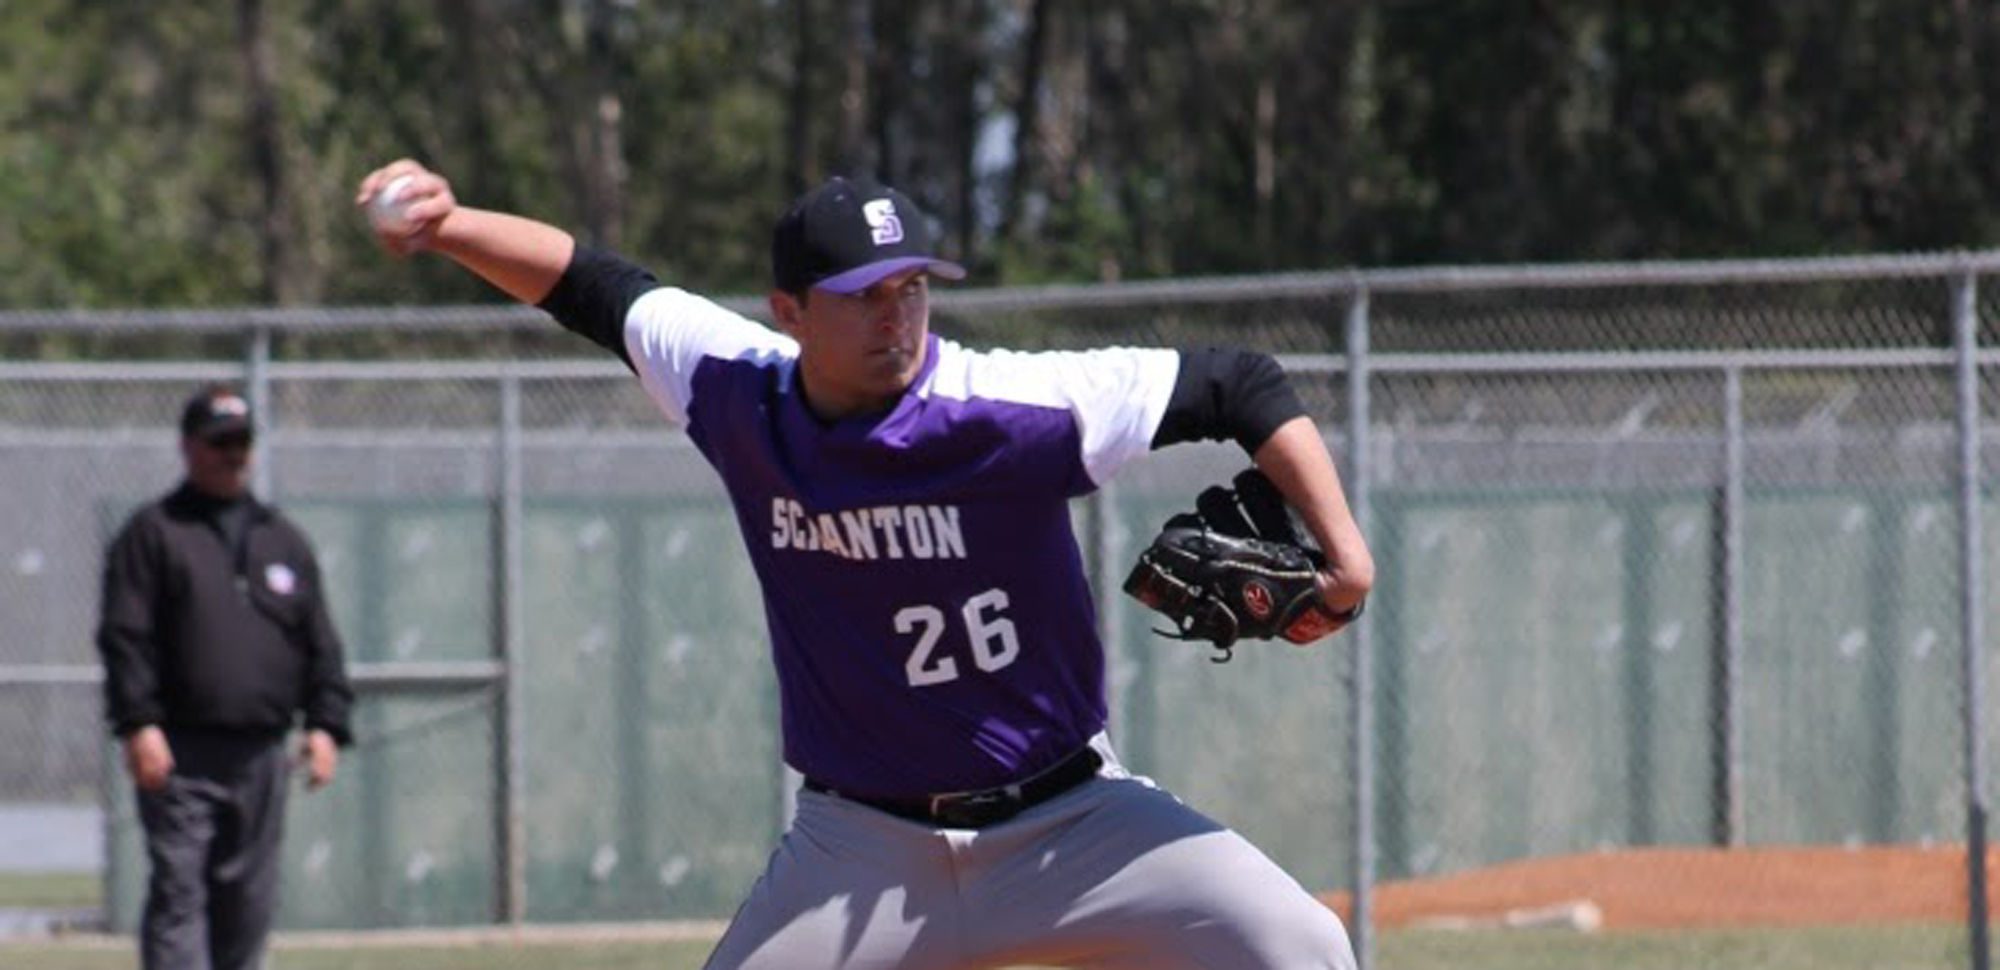 Sophomore Bobby Hegarty tossed four shutout innings against Kean on Sunday.